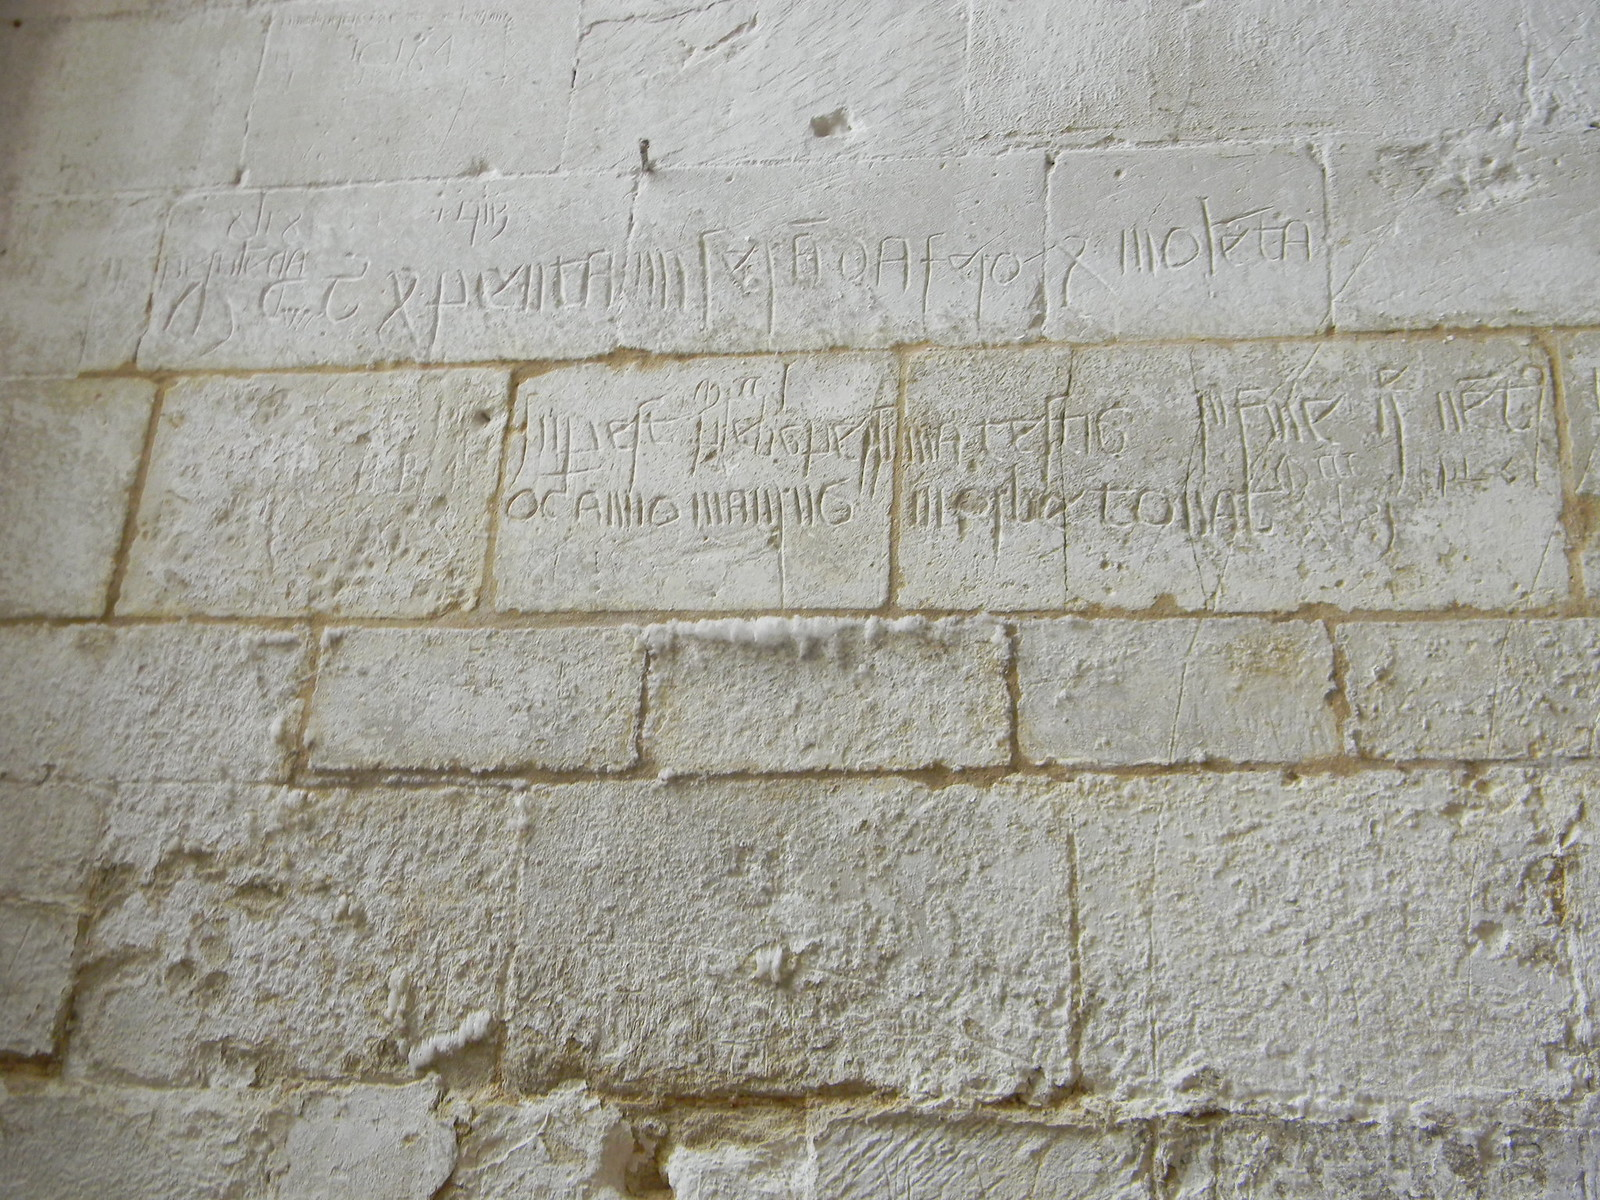 Ancient Graffiti Ashwell Church Refers to the Black Death In Latin Baldock Circular